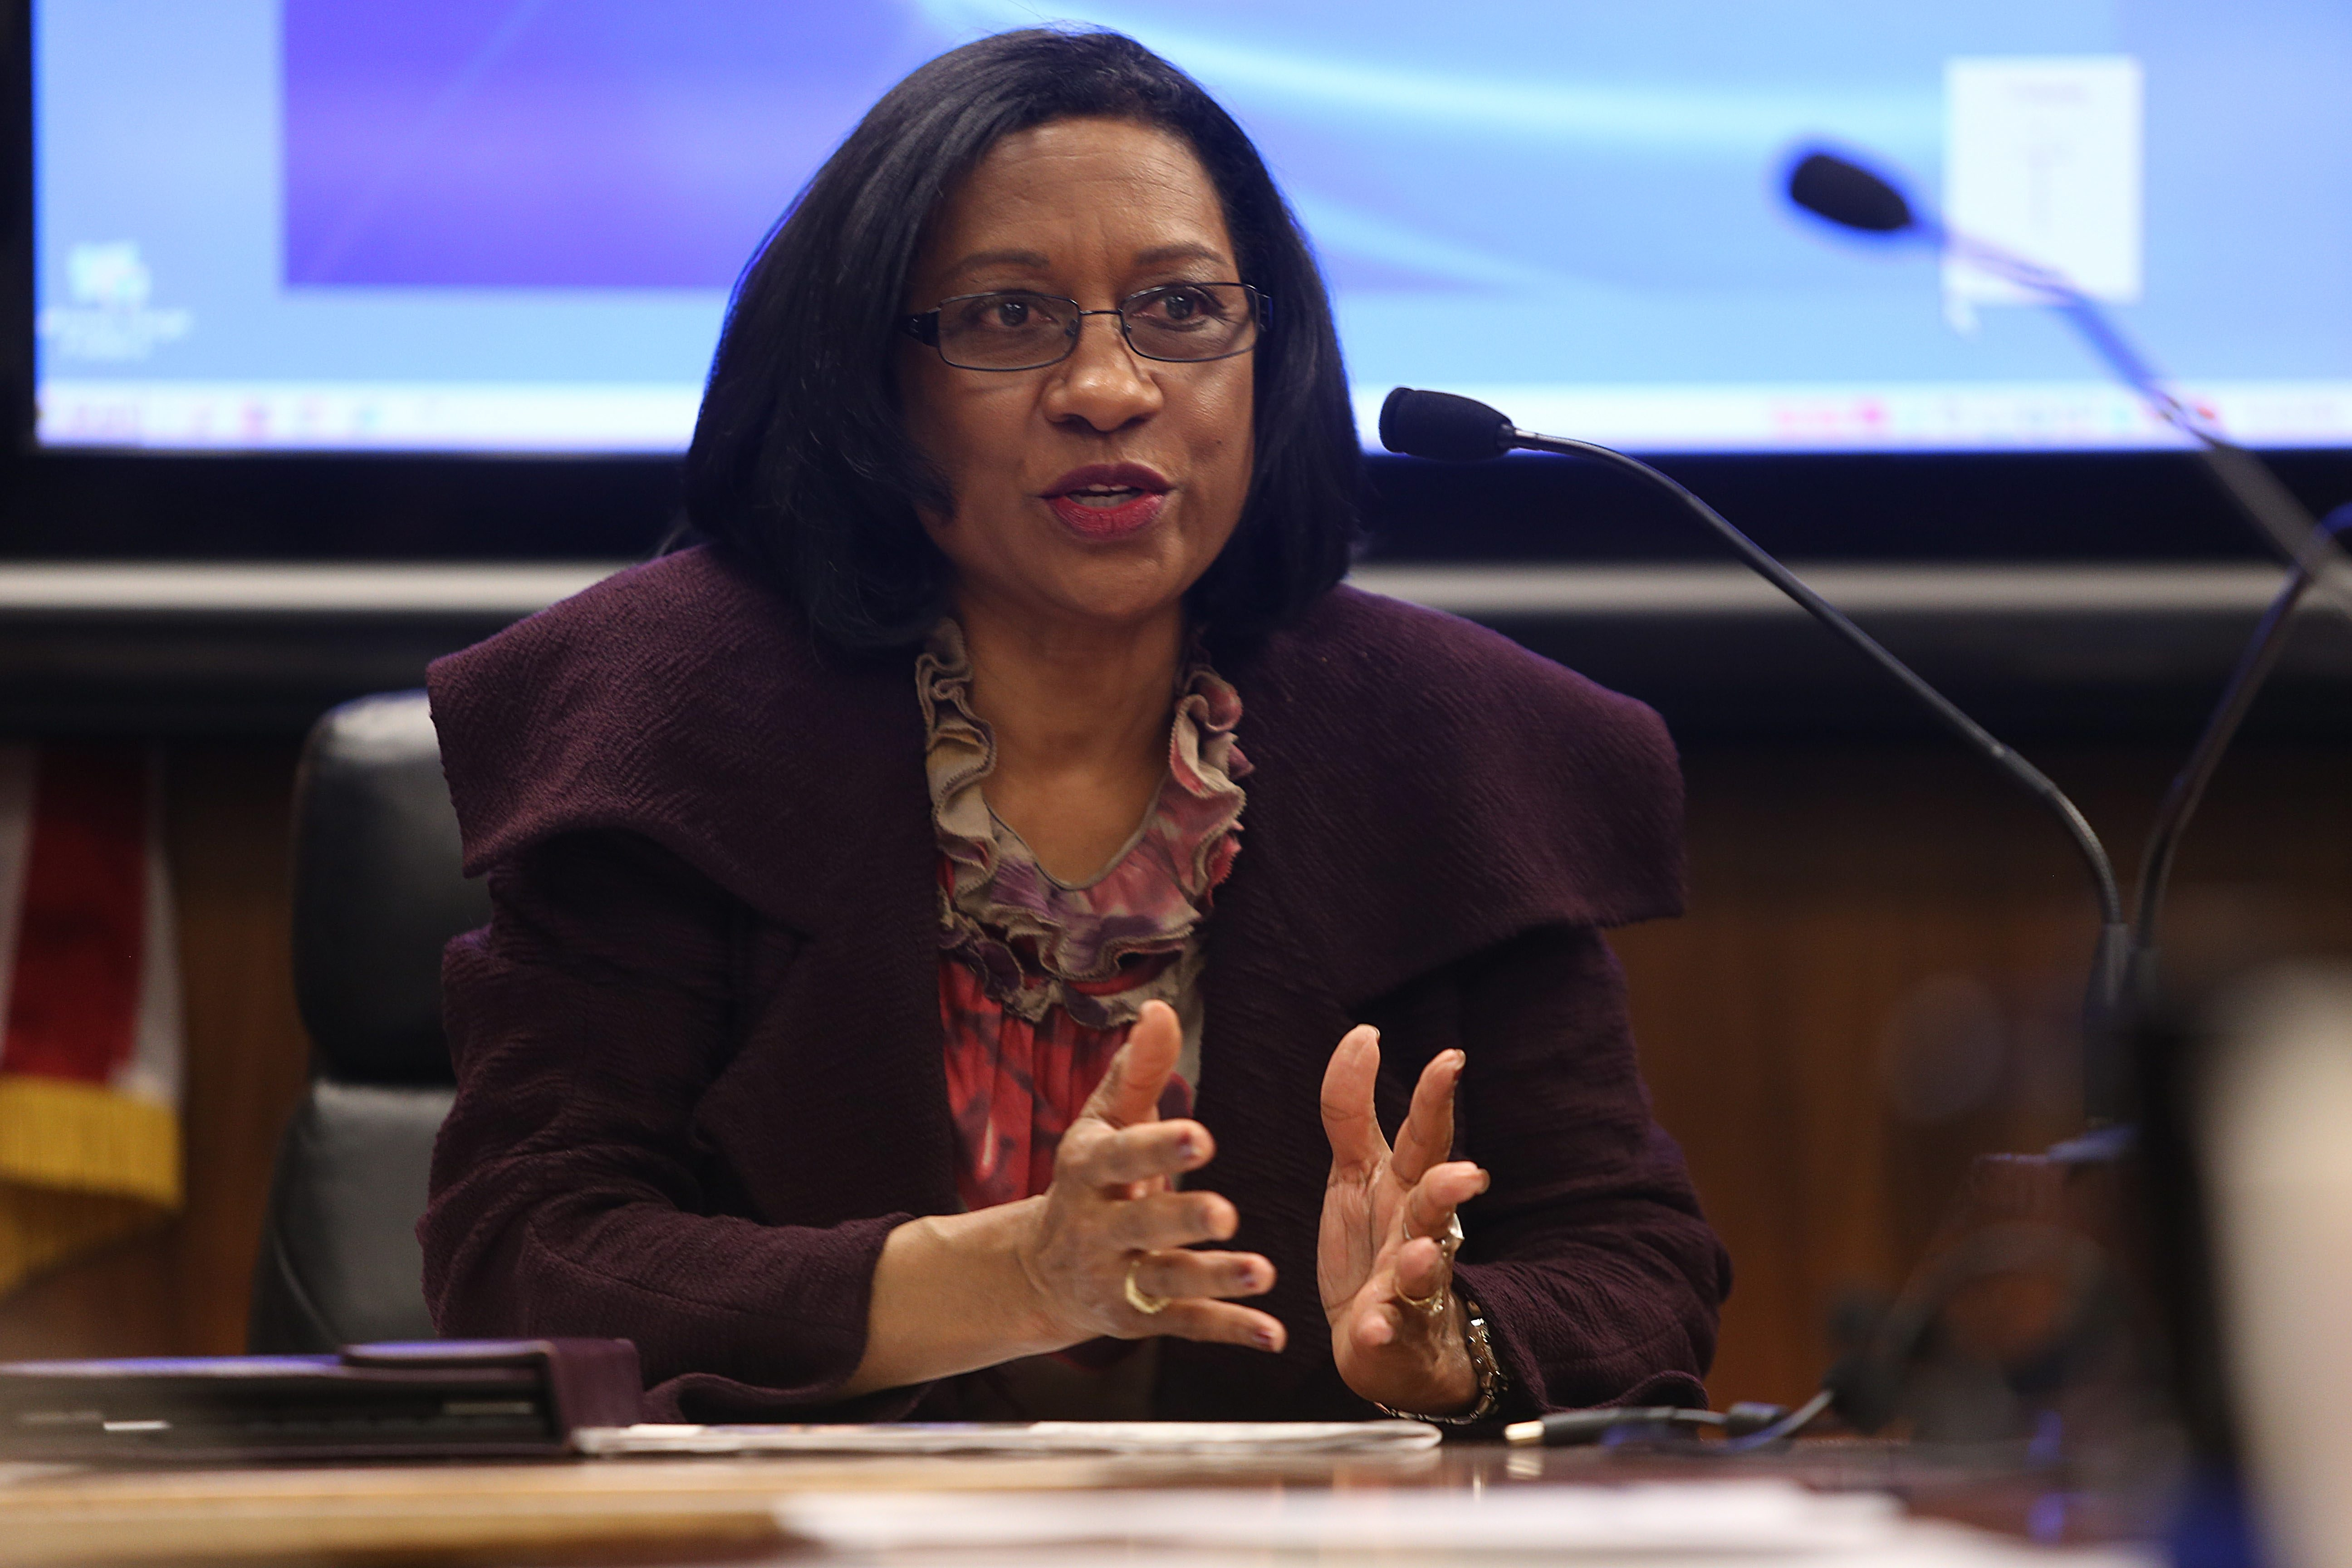 Buffalo Public School District Superintendent Pamela Brown says keeping Johns Hopkins University as the leader of Lafayette and East high schools is a challenge but not something impossible.